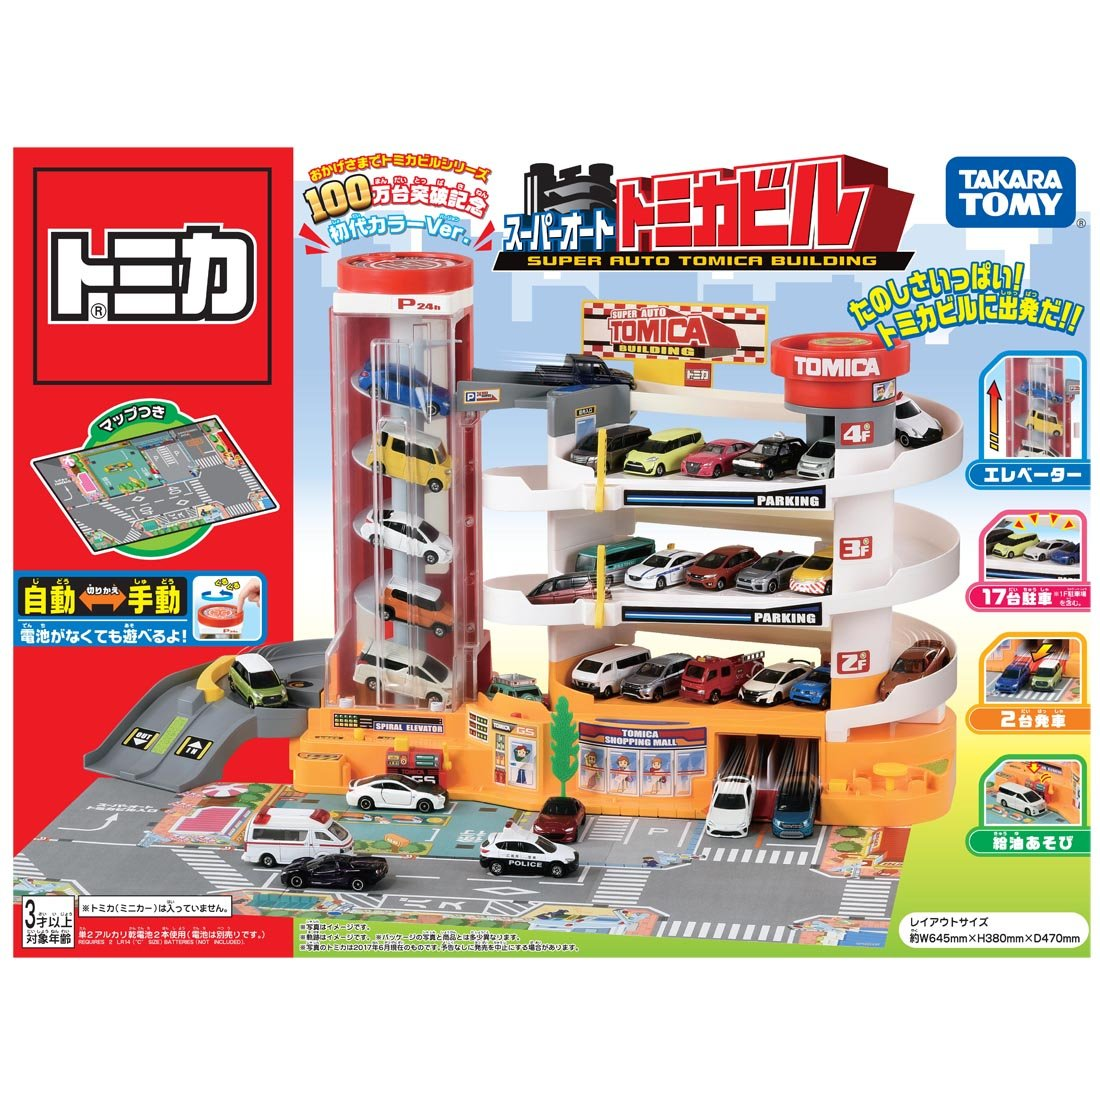 Parking lot Bau- & Konstruktionsspielzeug-Sets Takara Tomy Tomica Super Auto Tomica Town Building First Color Ver